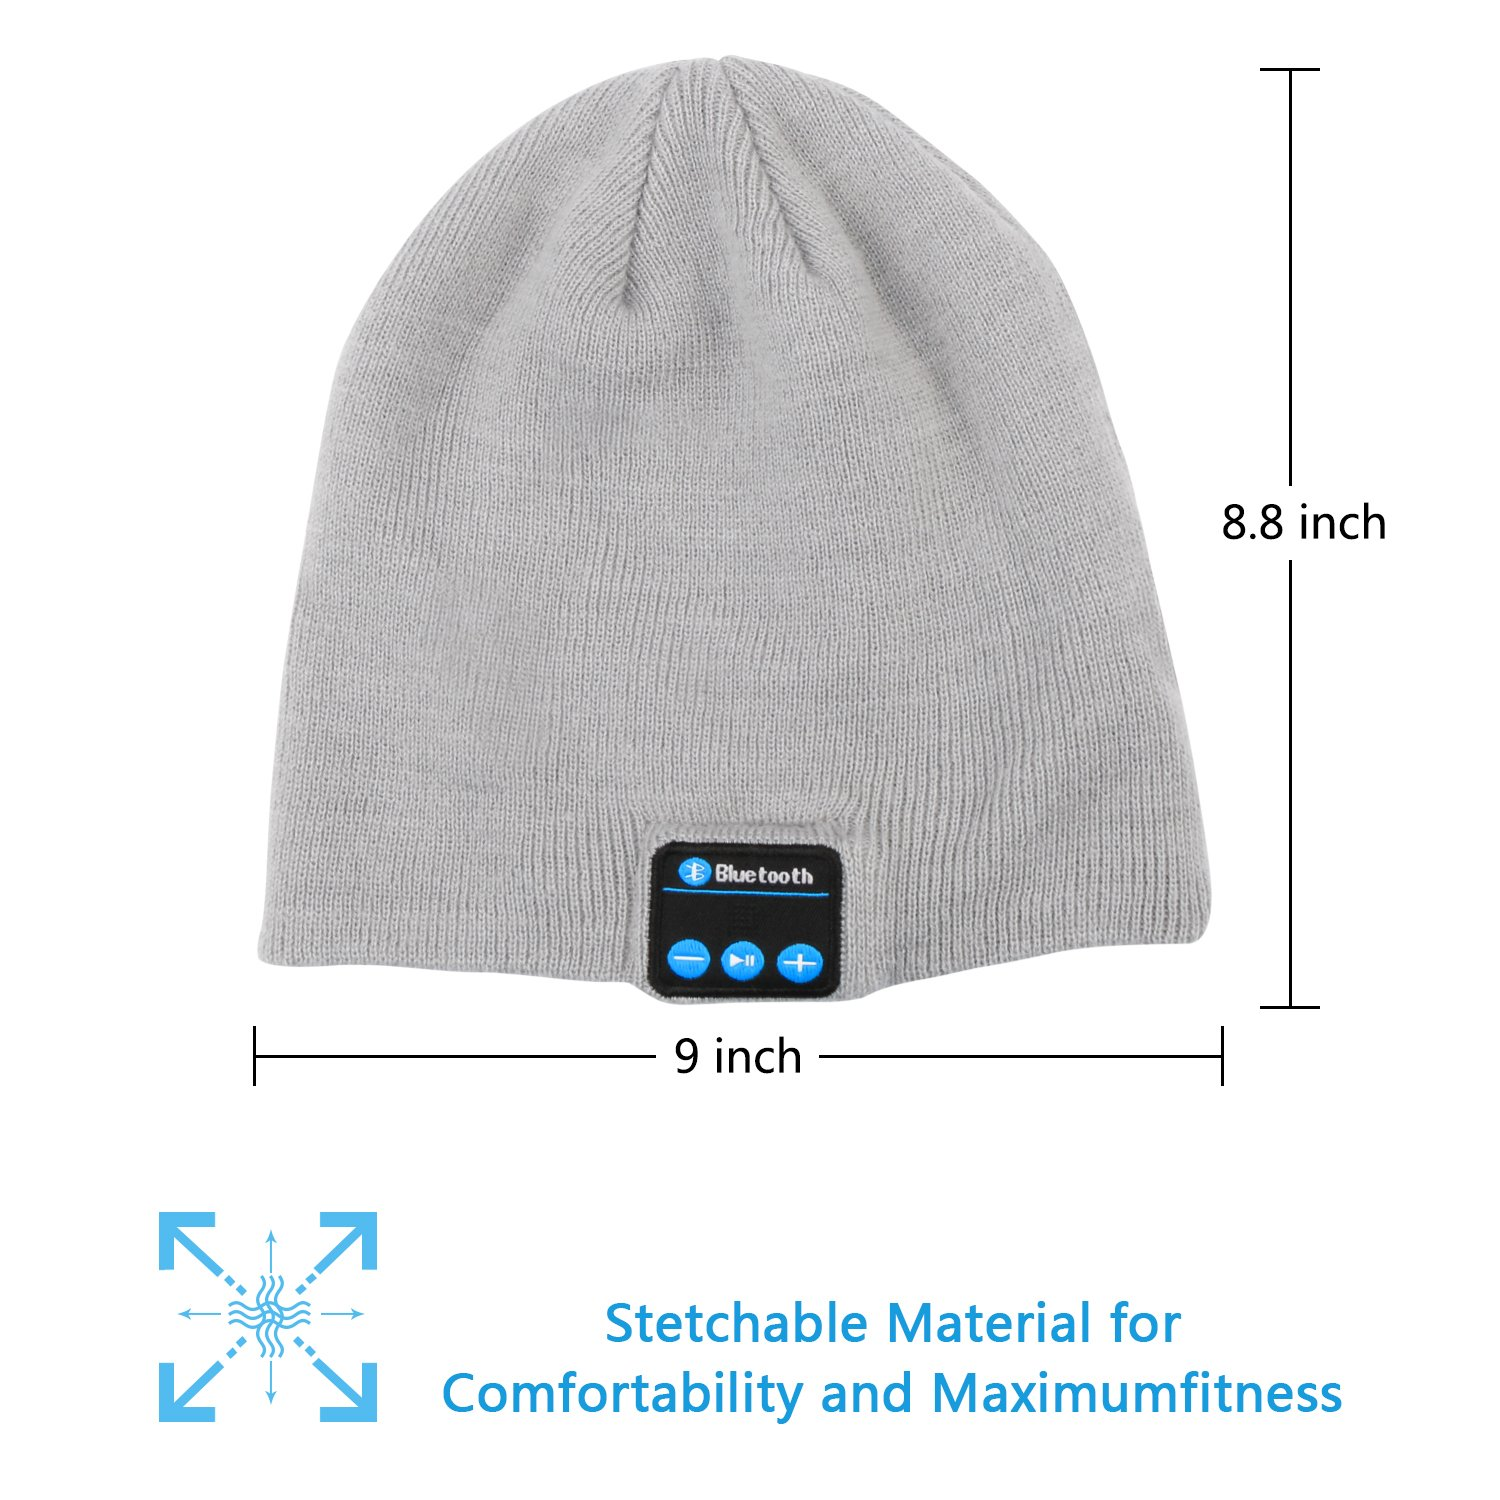 Dolida Bluetooth Wireless Music Beanie Hat Women Men Winter Knitted Hat Trendy Cap with Microphone & Stereo Headphones Headset for Sport Running Dancing, Best Christmas Gift Grey